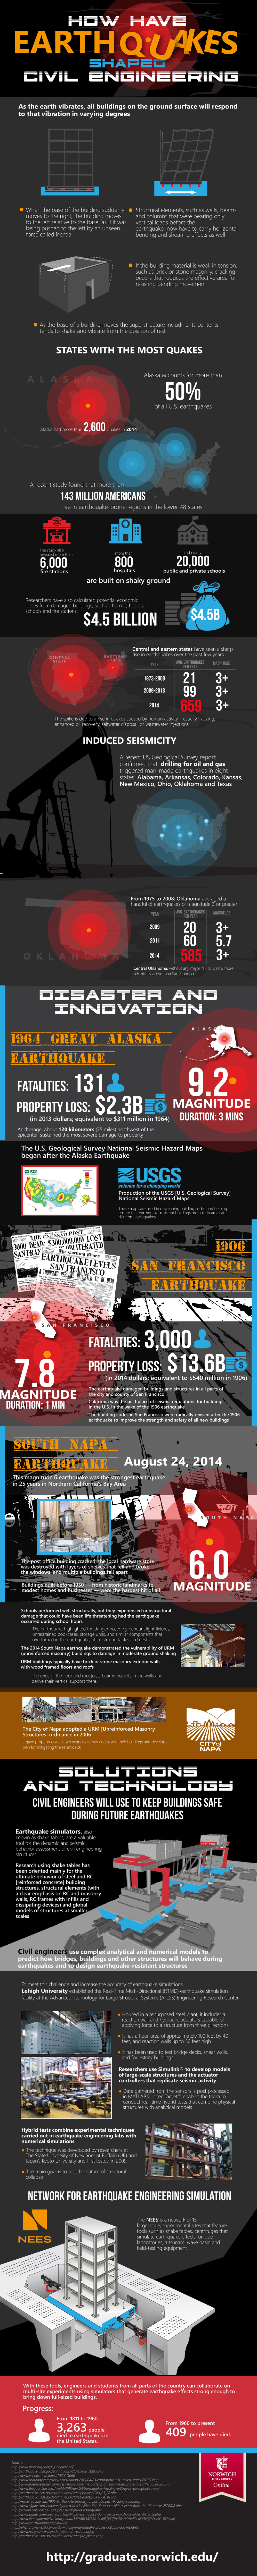 How Have Earthquakes Shaped Civil Engineering